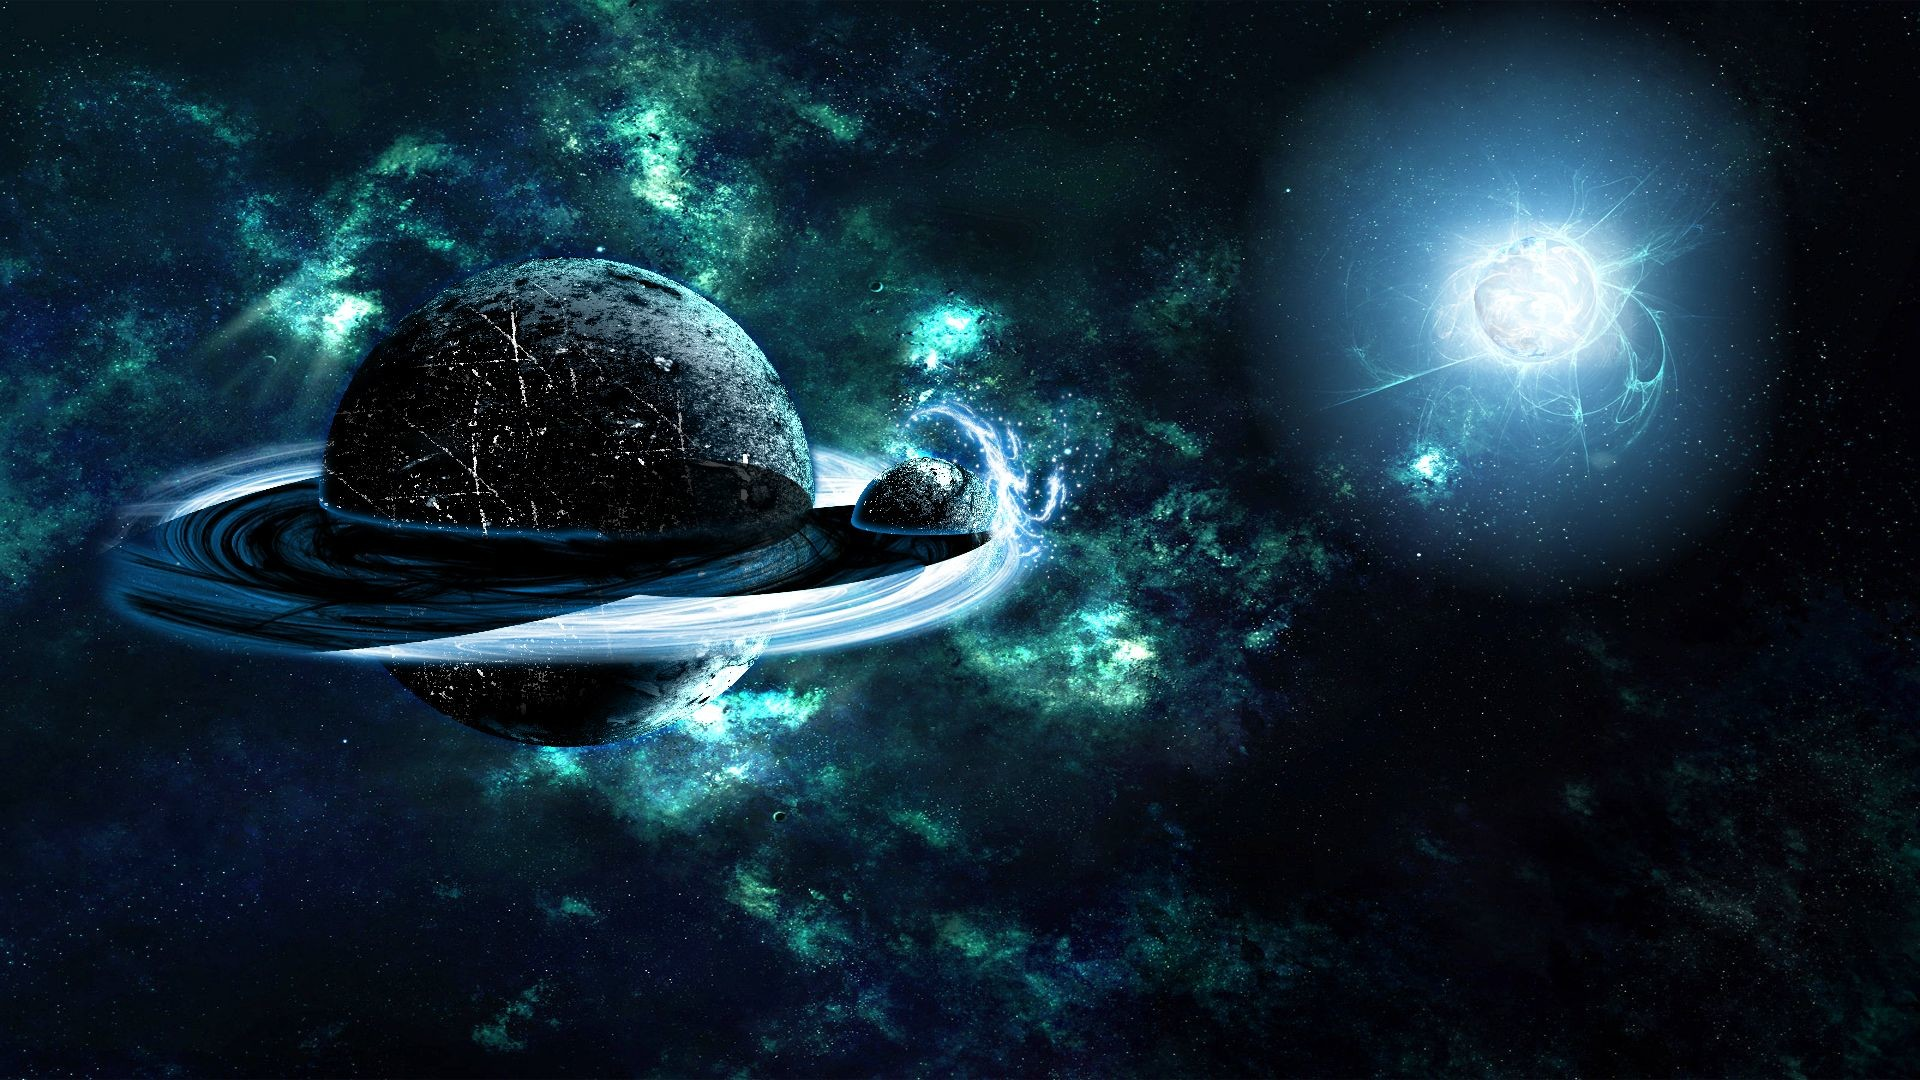 Outer Space Full HD Quality Wallpapers, Widescreen Wallpapers Pictures Of Space  Wallpapers Wallpapers)